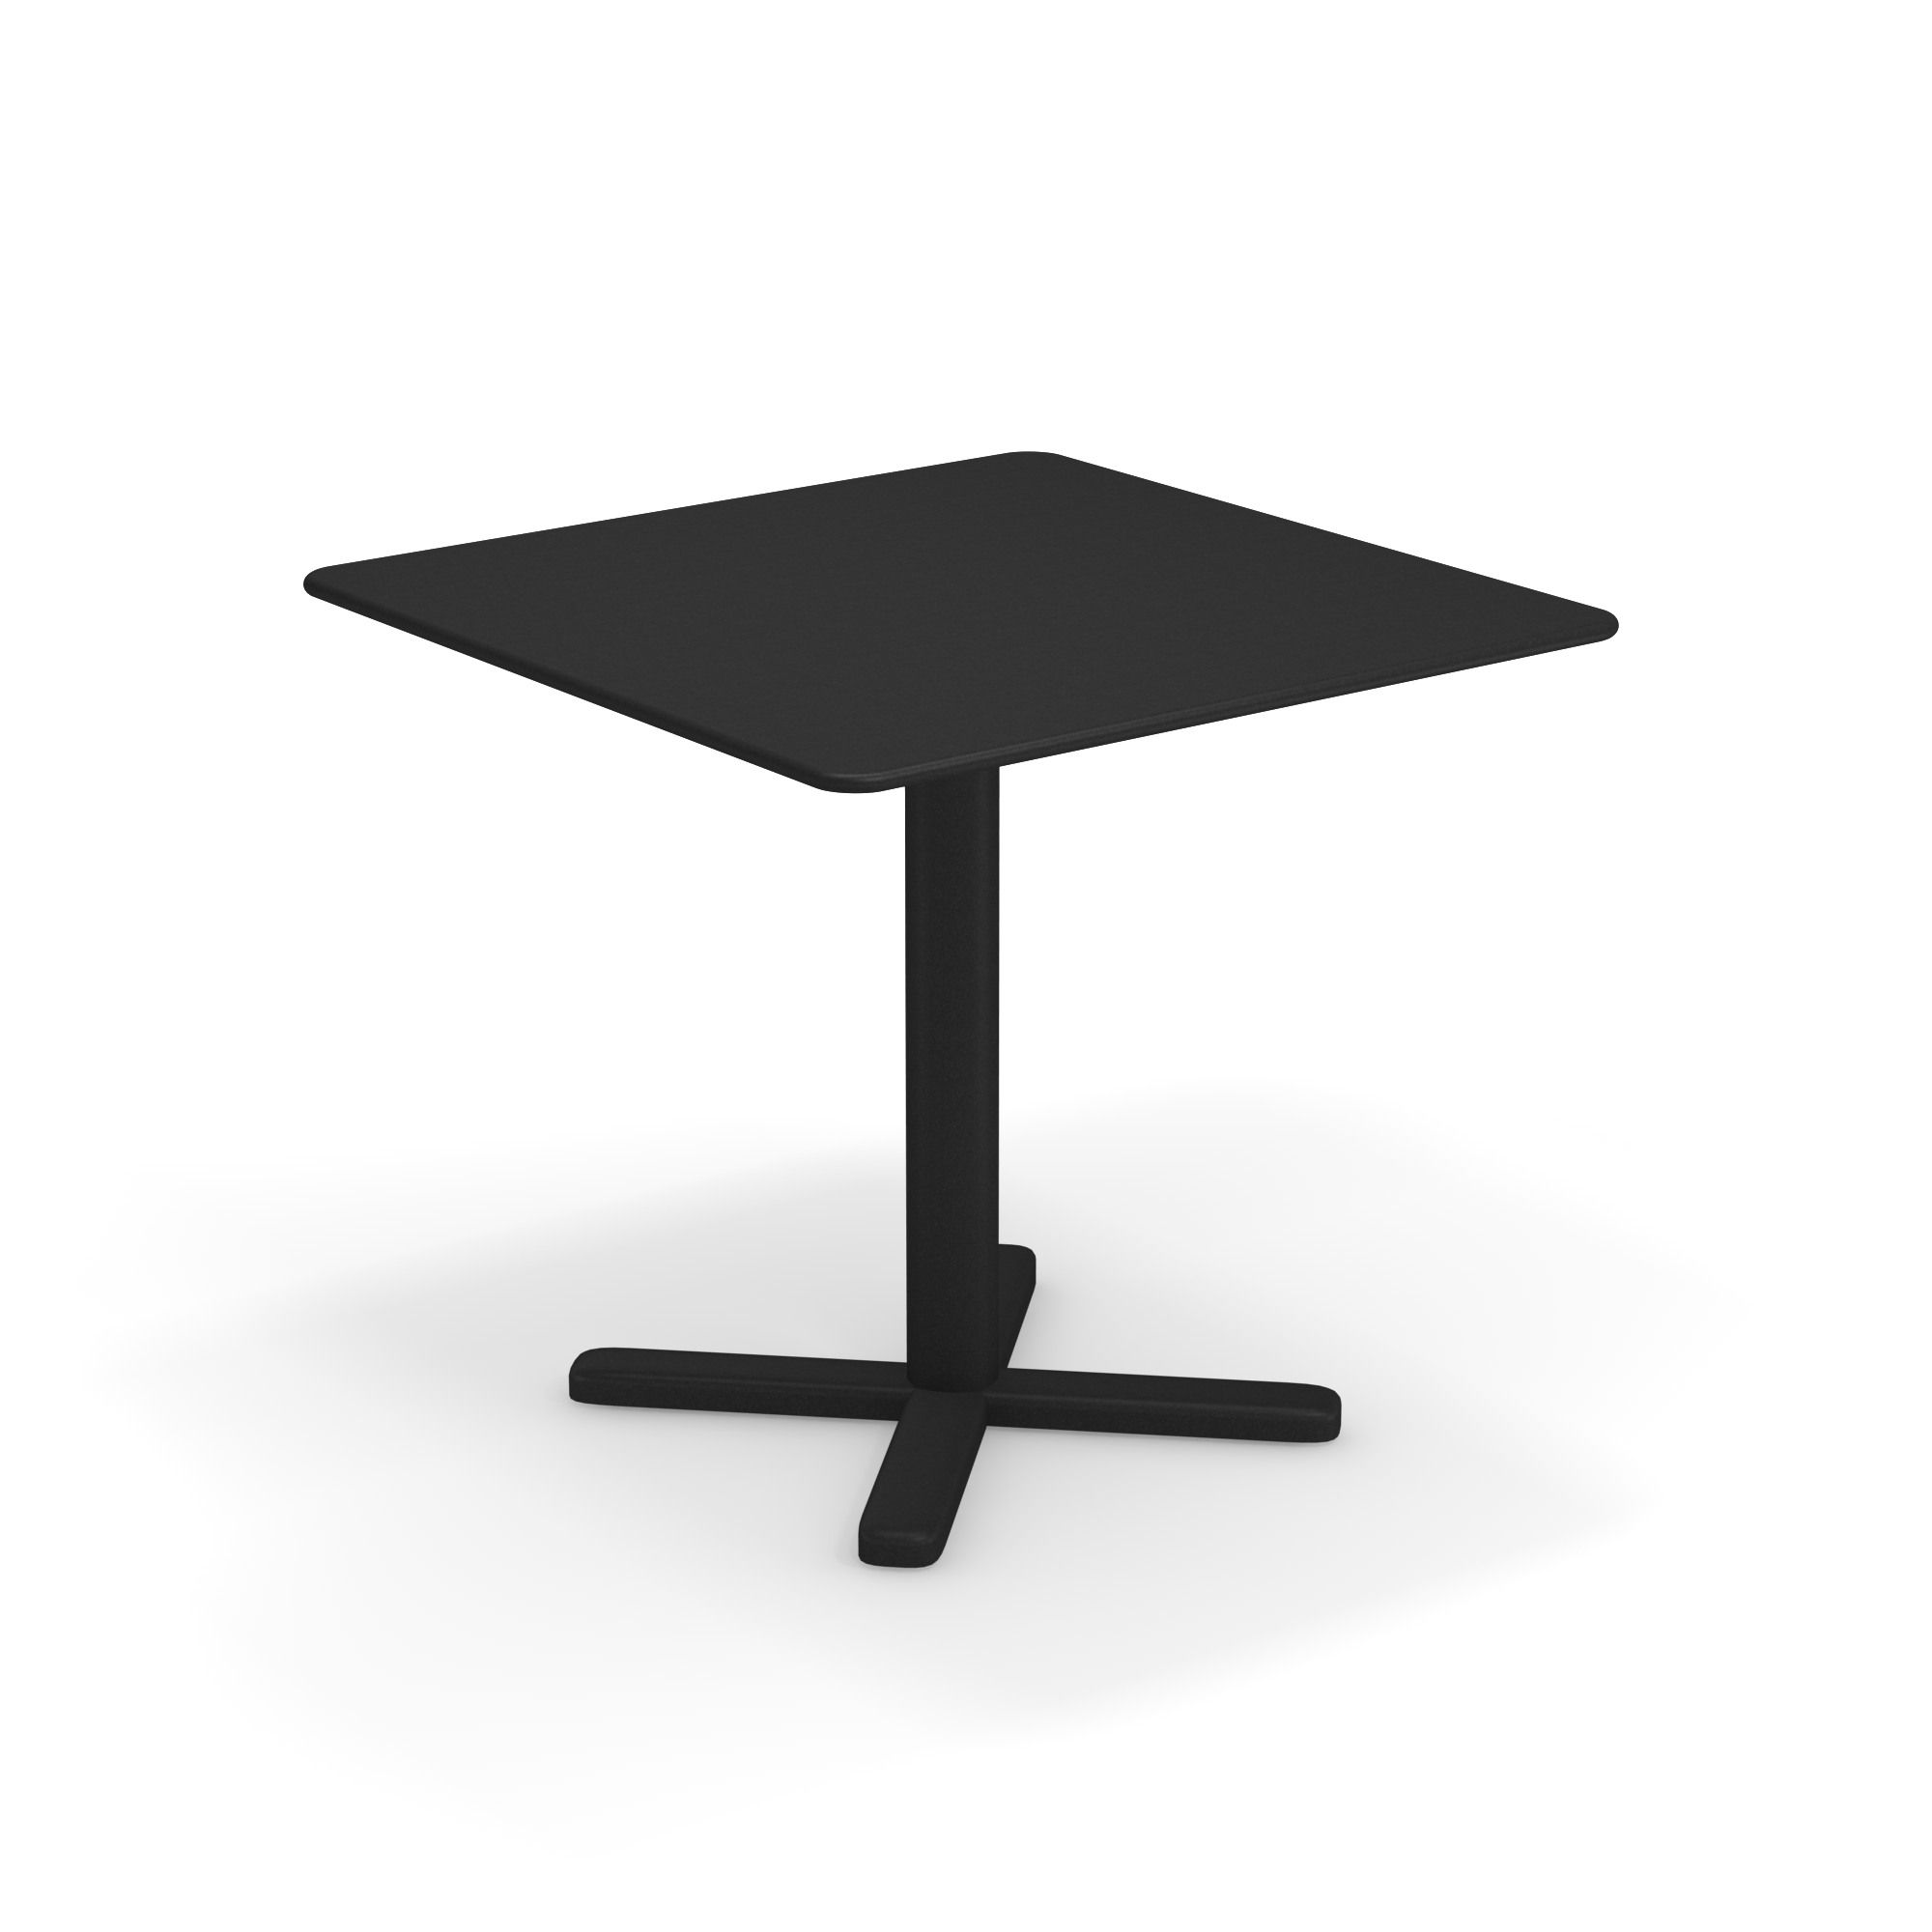 emuamericas, llc 529-24 table, outdoor